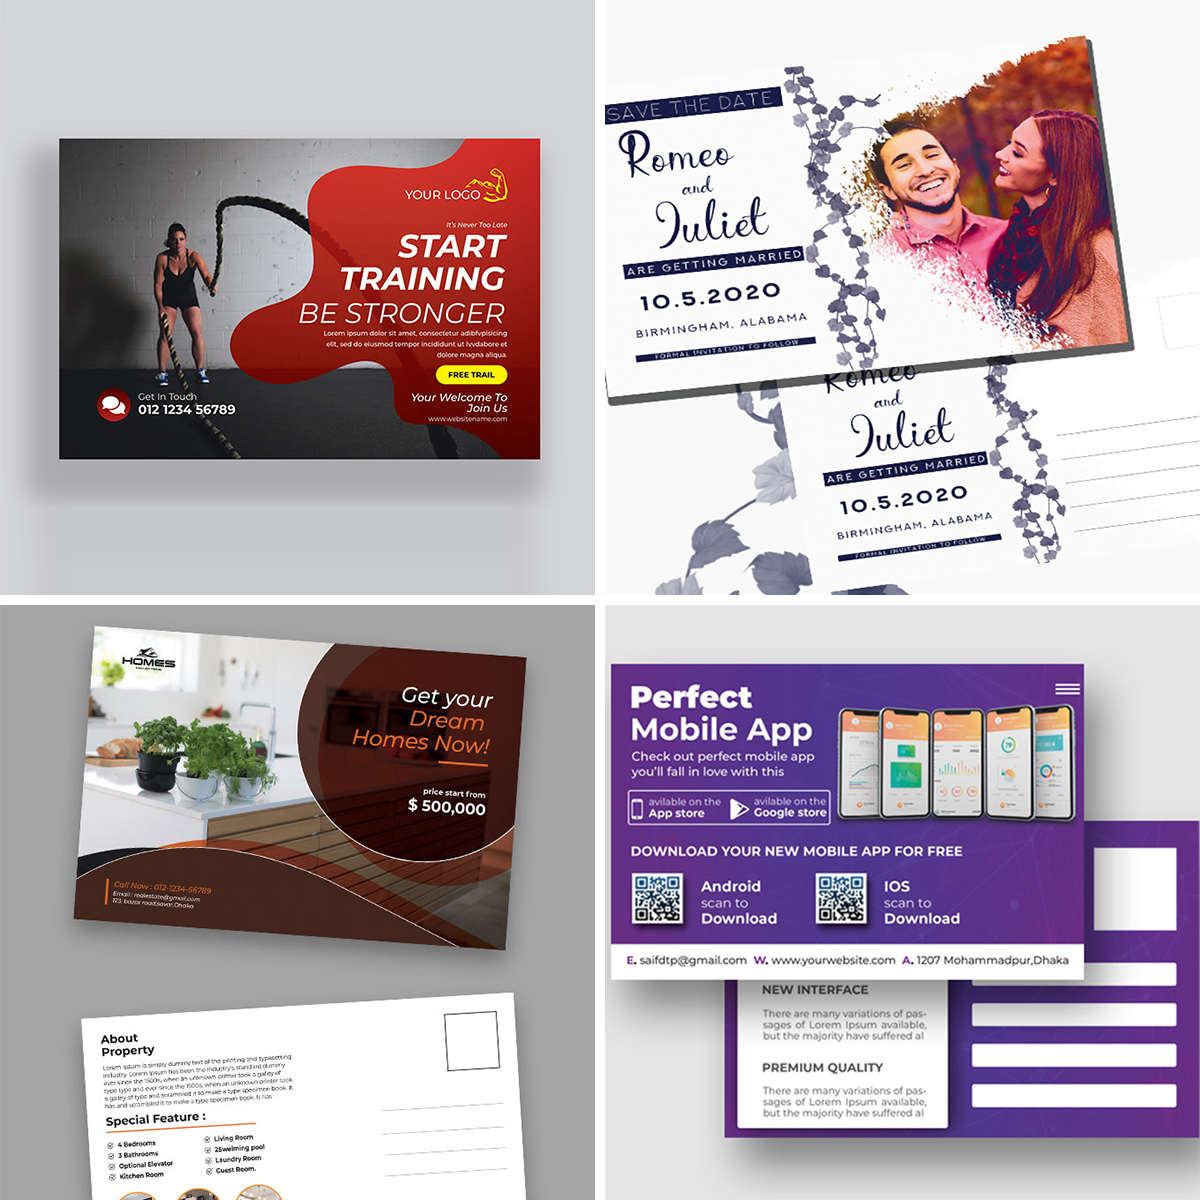 Royal Print Templates Bundle with 160 Items - Only $19 - cards